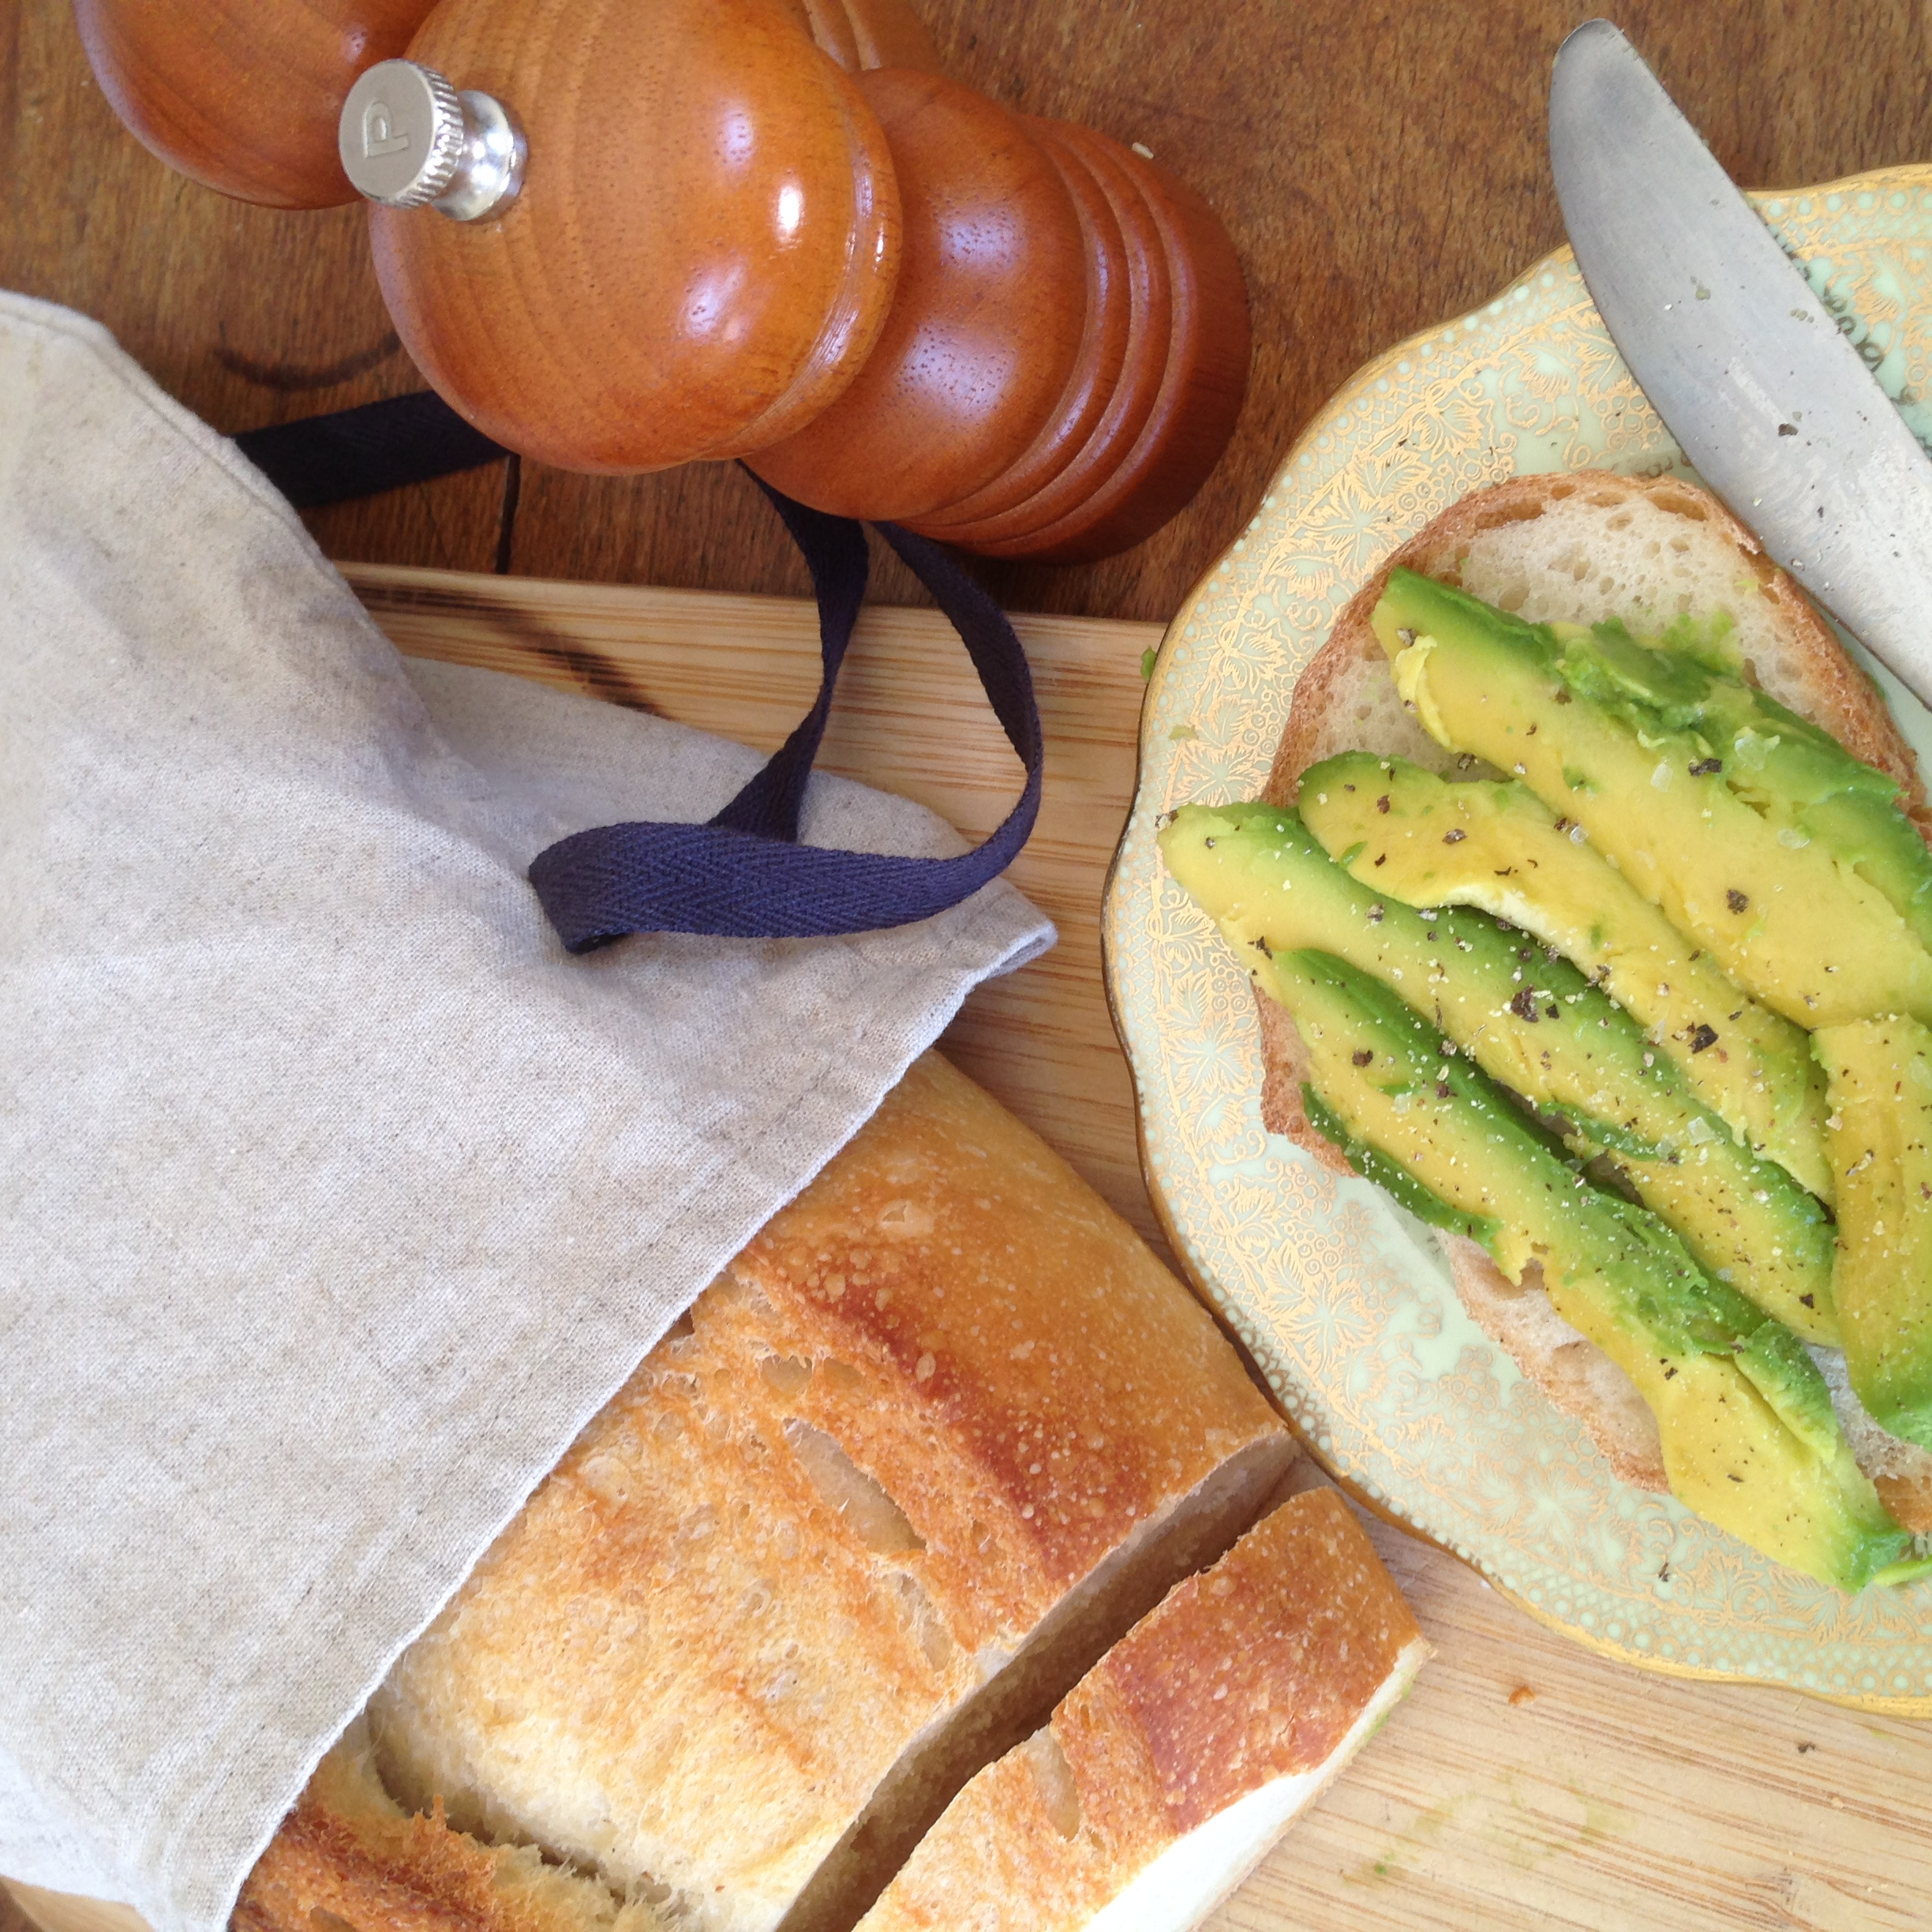 sour dough loaf with avocado